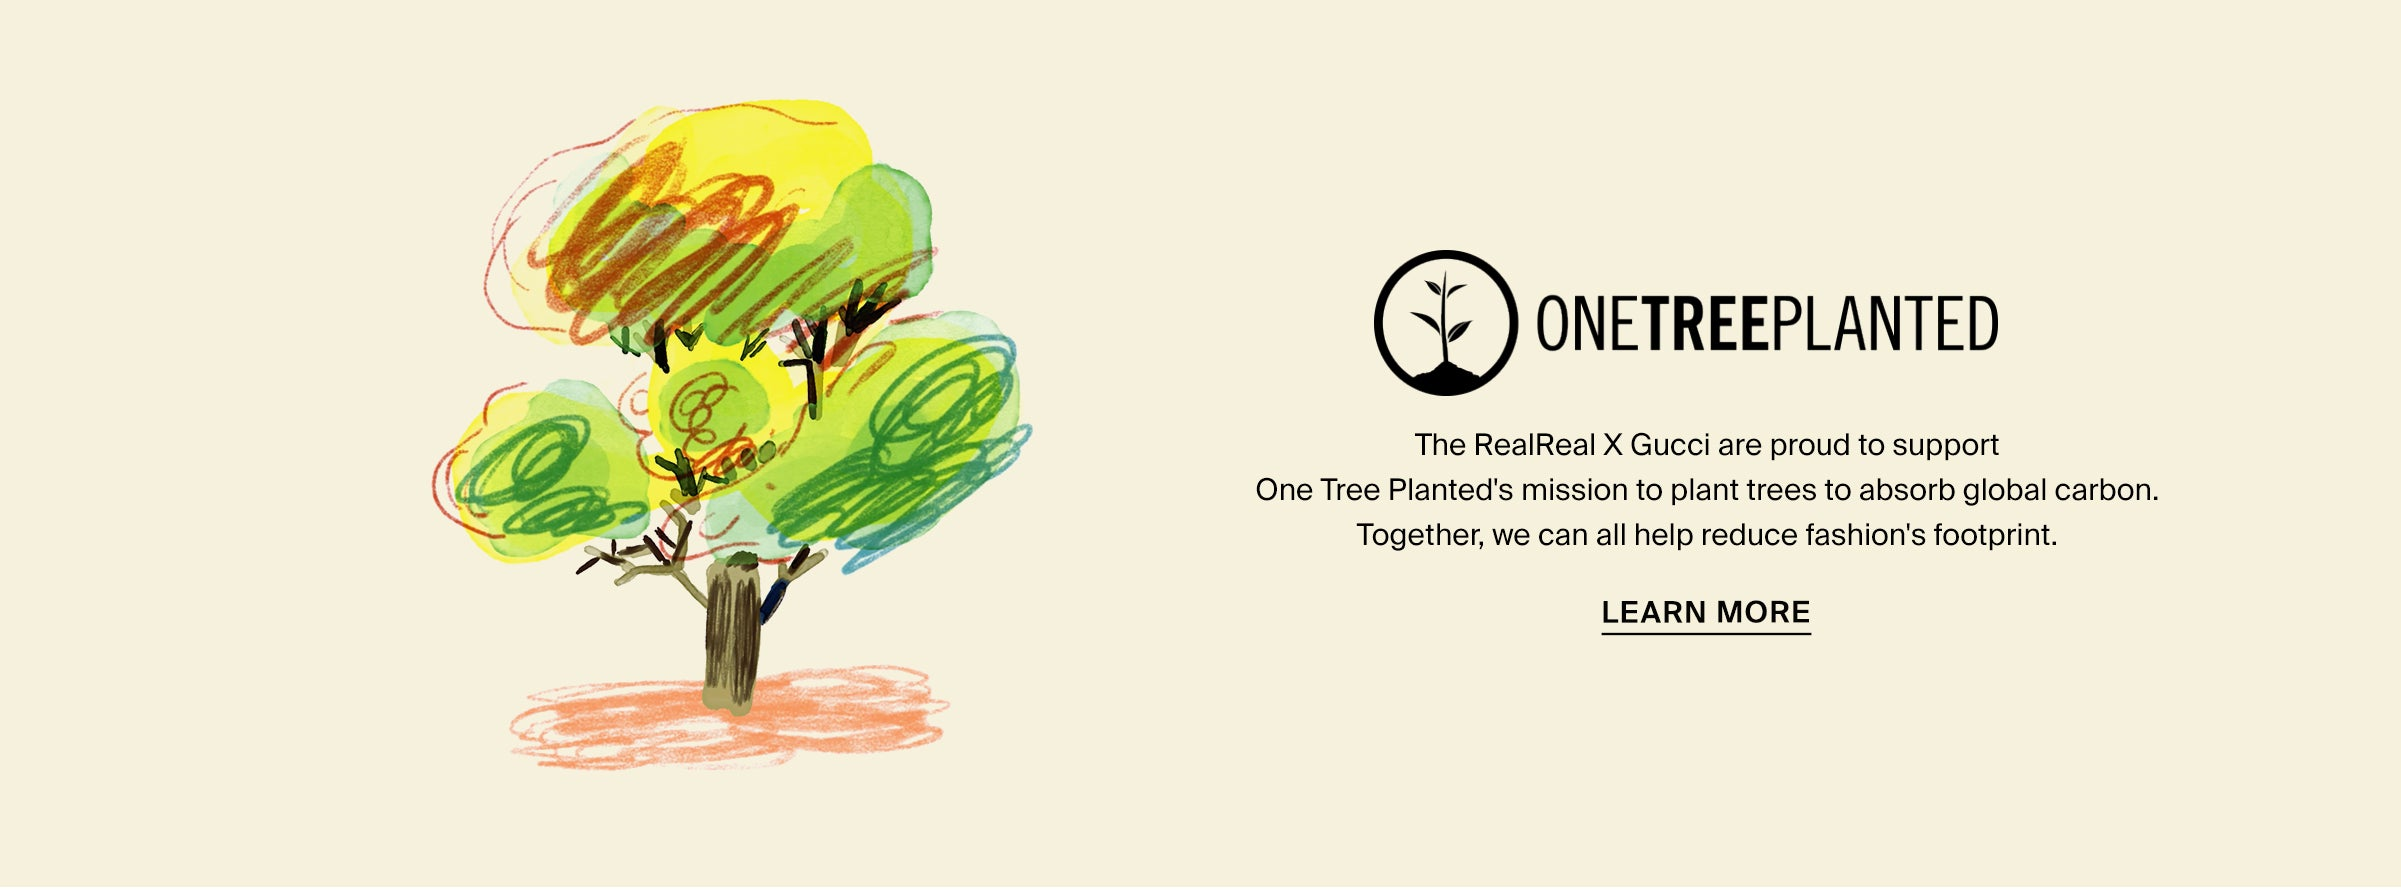 OneTreePlanted: The RealReal X Gucci are proud to support One Tree Planted's mission to plant trees to absorb global carbon. Together, we can reduce Fashion's footprint. Learn More.